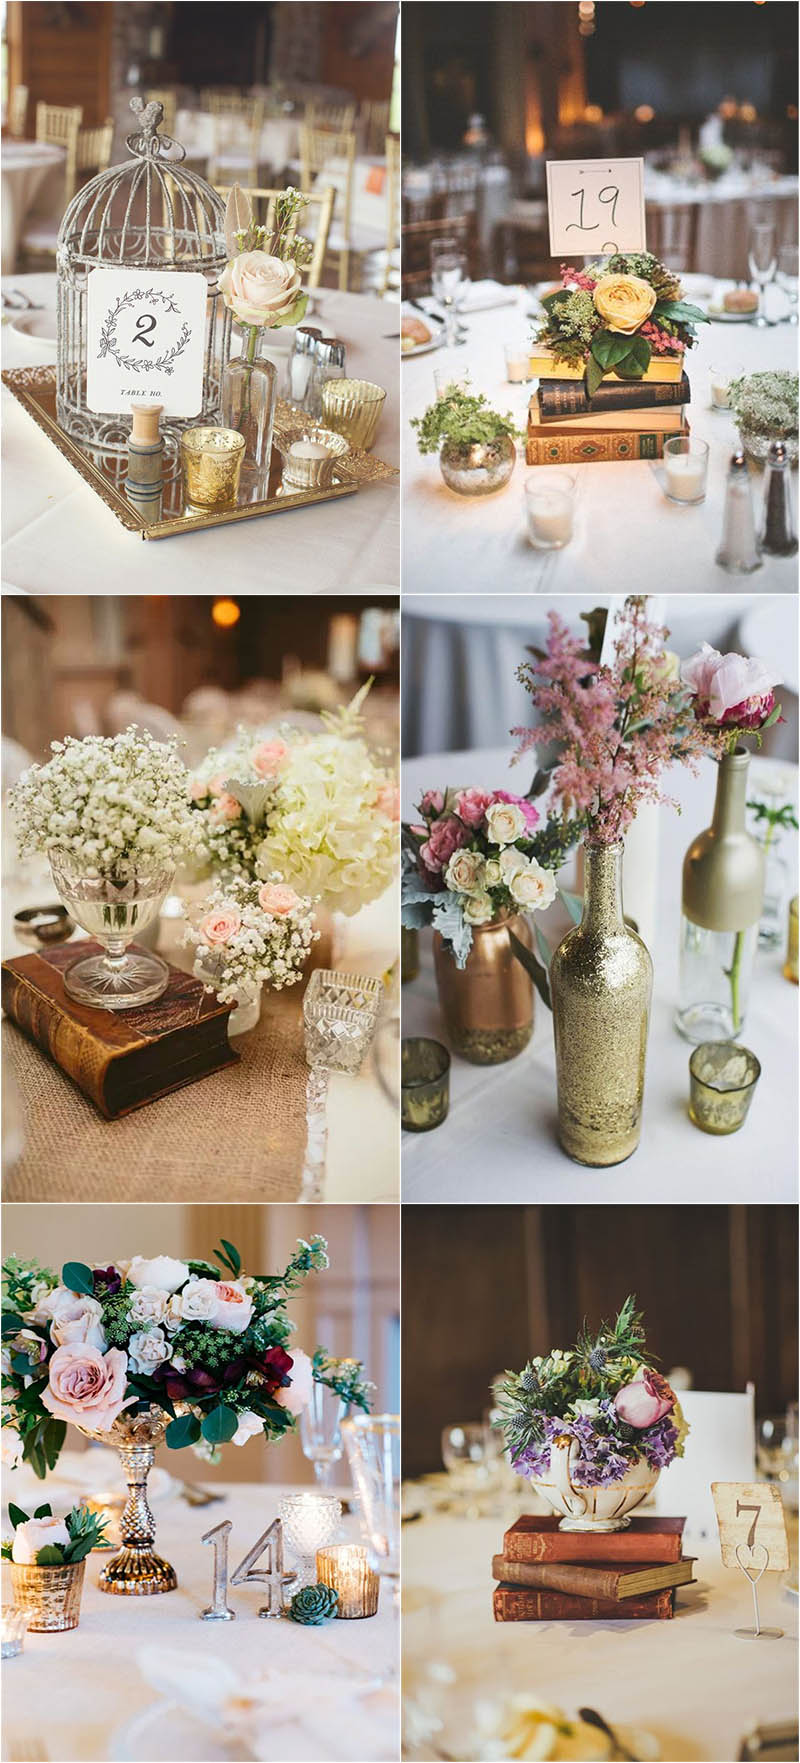 Top 5 stylish wedding centerpieces ideas for 2018 elegant and vintage wedding centerpieces junglespirit Image collections